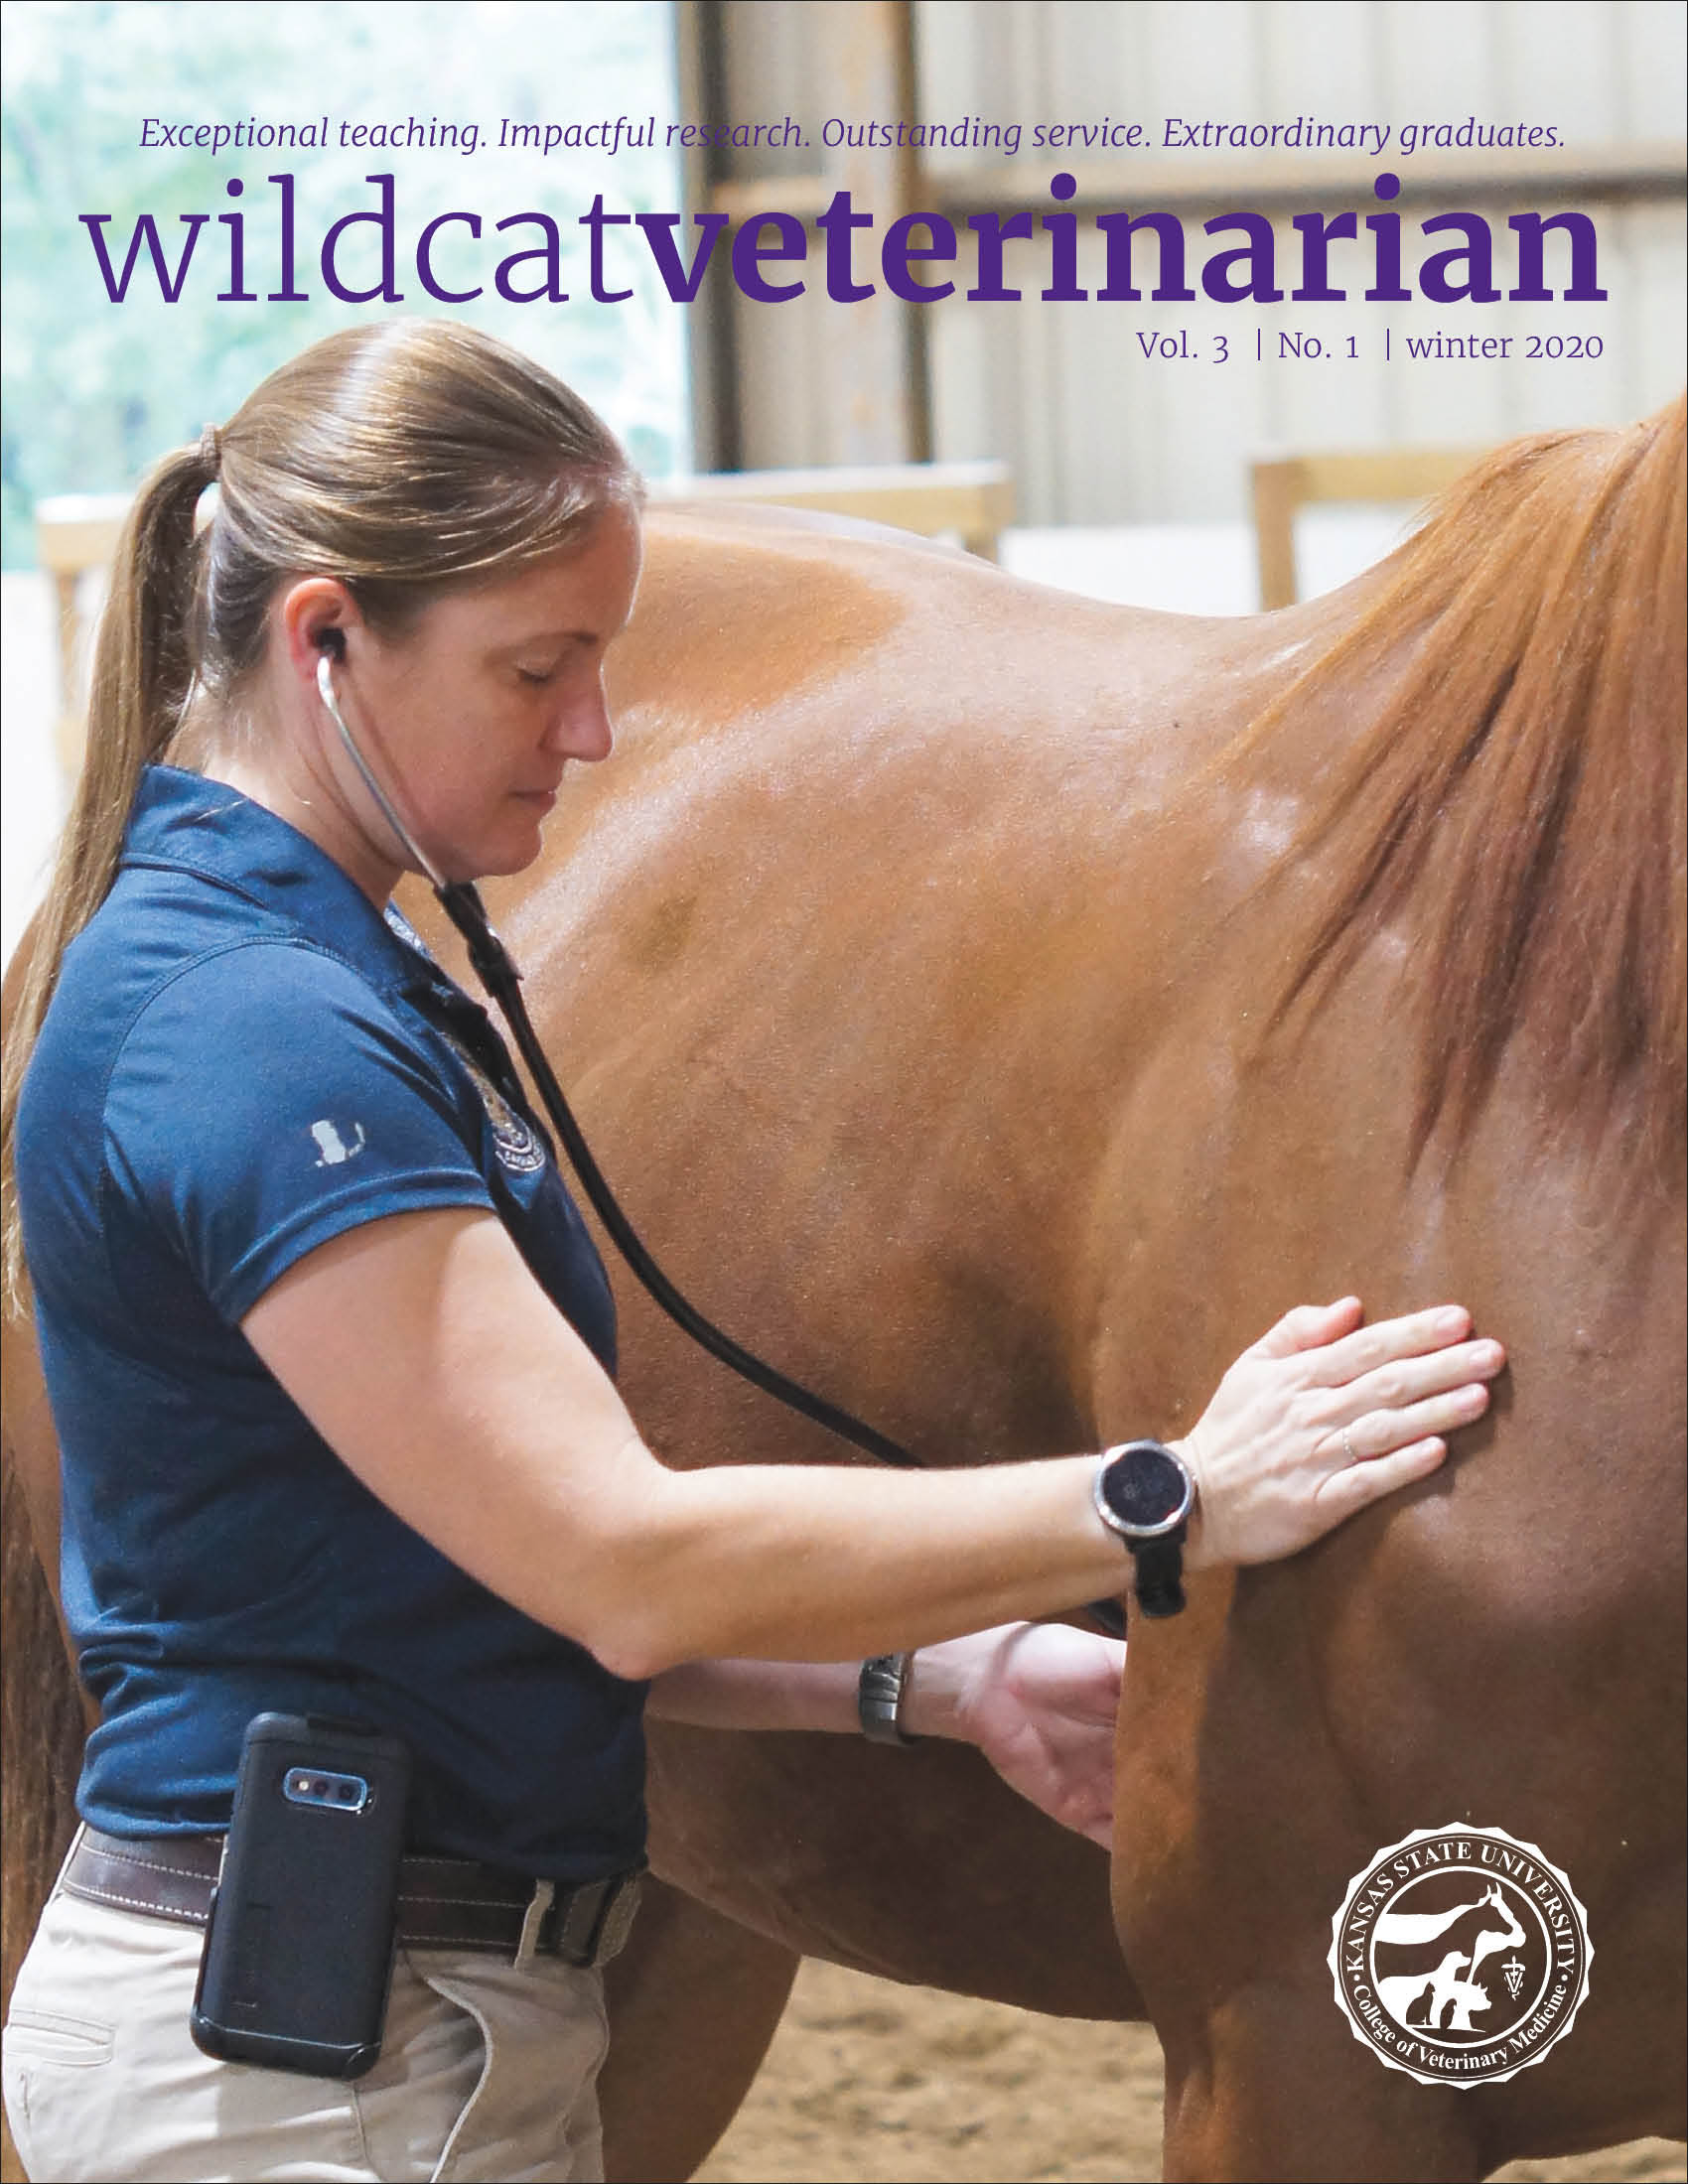 Wildcat Veterinarian - Winter 2020